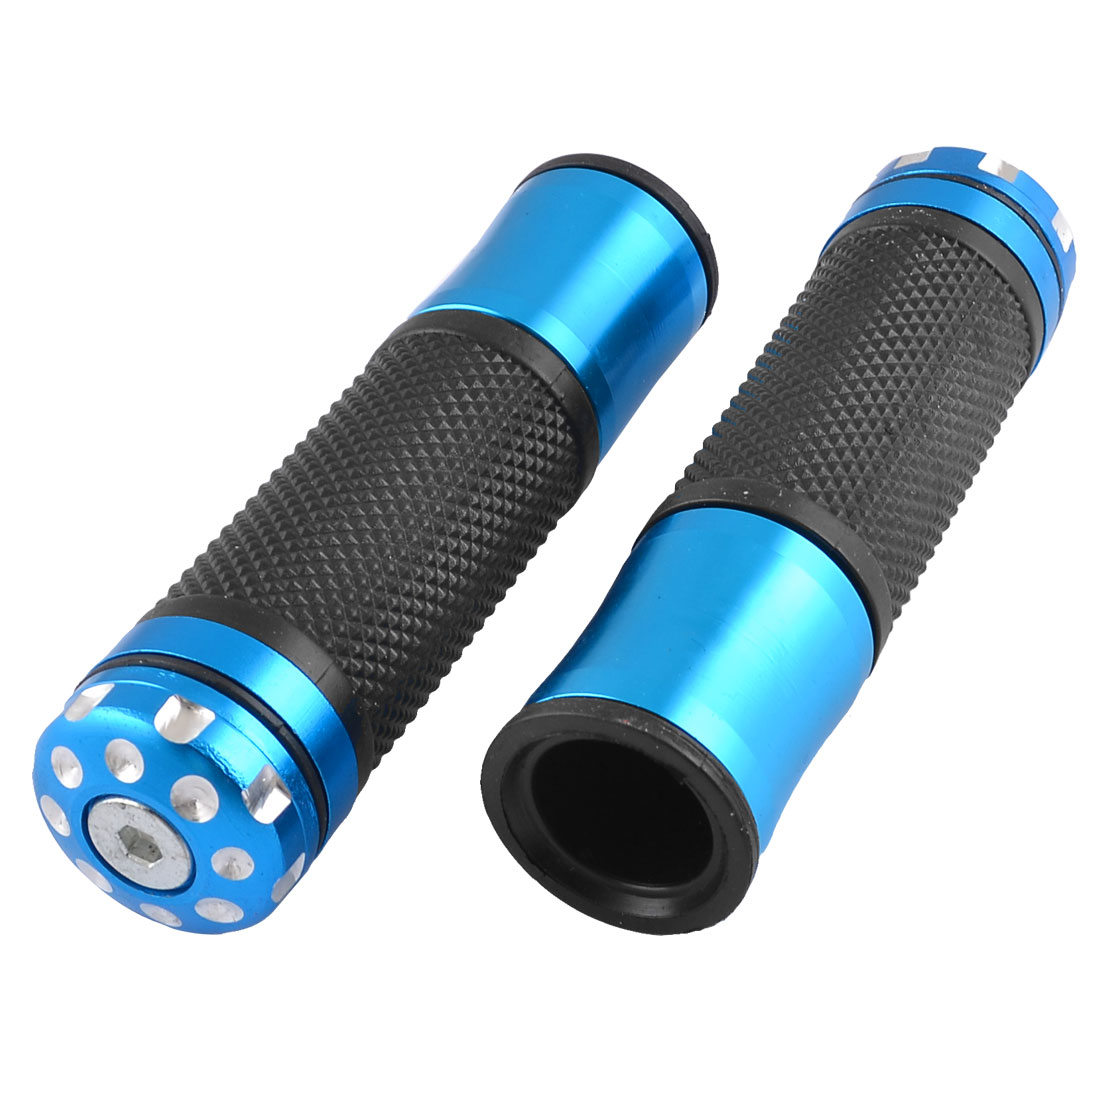 Pair Rubber Nonslip Checkered Print Bicycle Bike Handlebar Grip Cover Blue Black